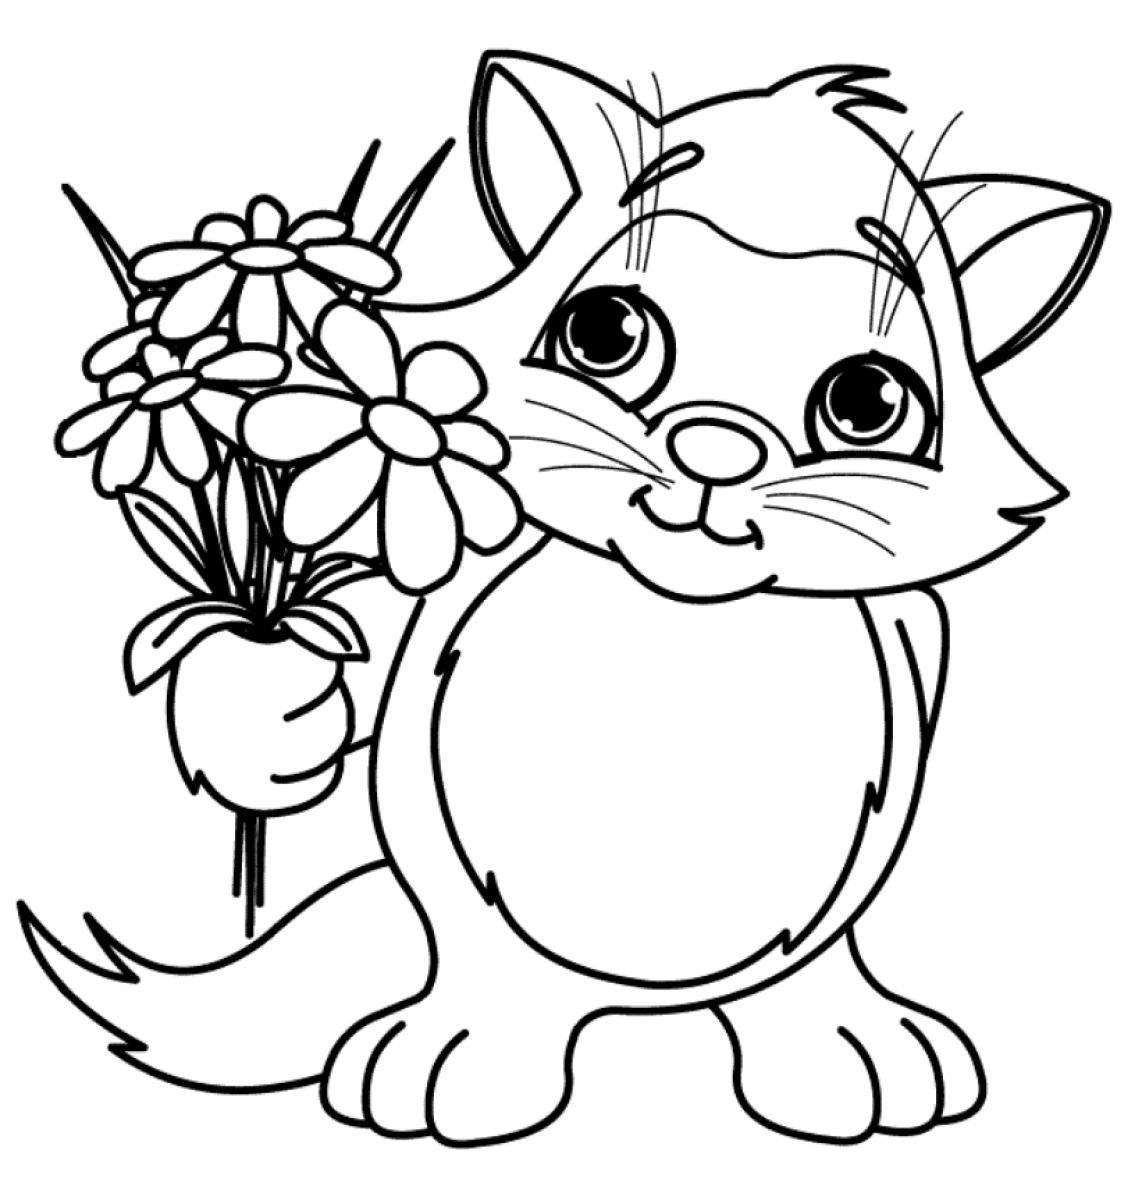 pictures of flowers for coloring free printable flower coloring pages for kids best of coloring for flowers pictures